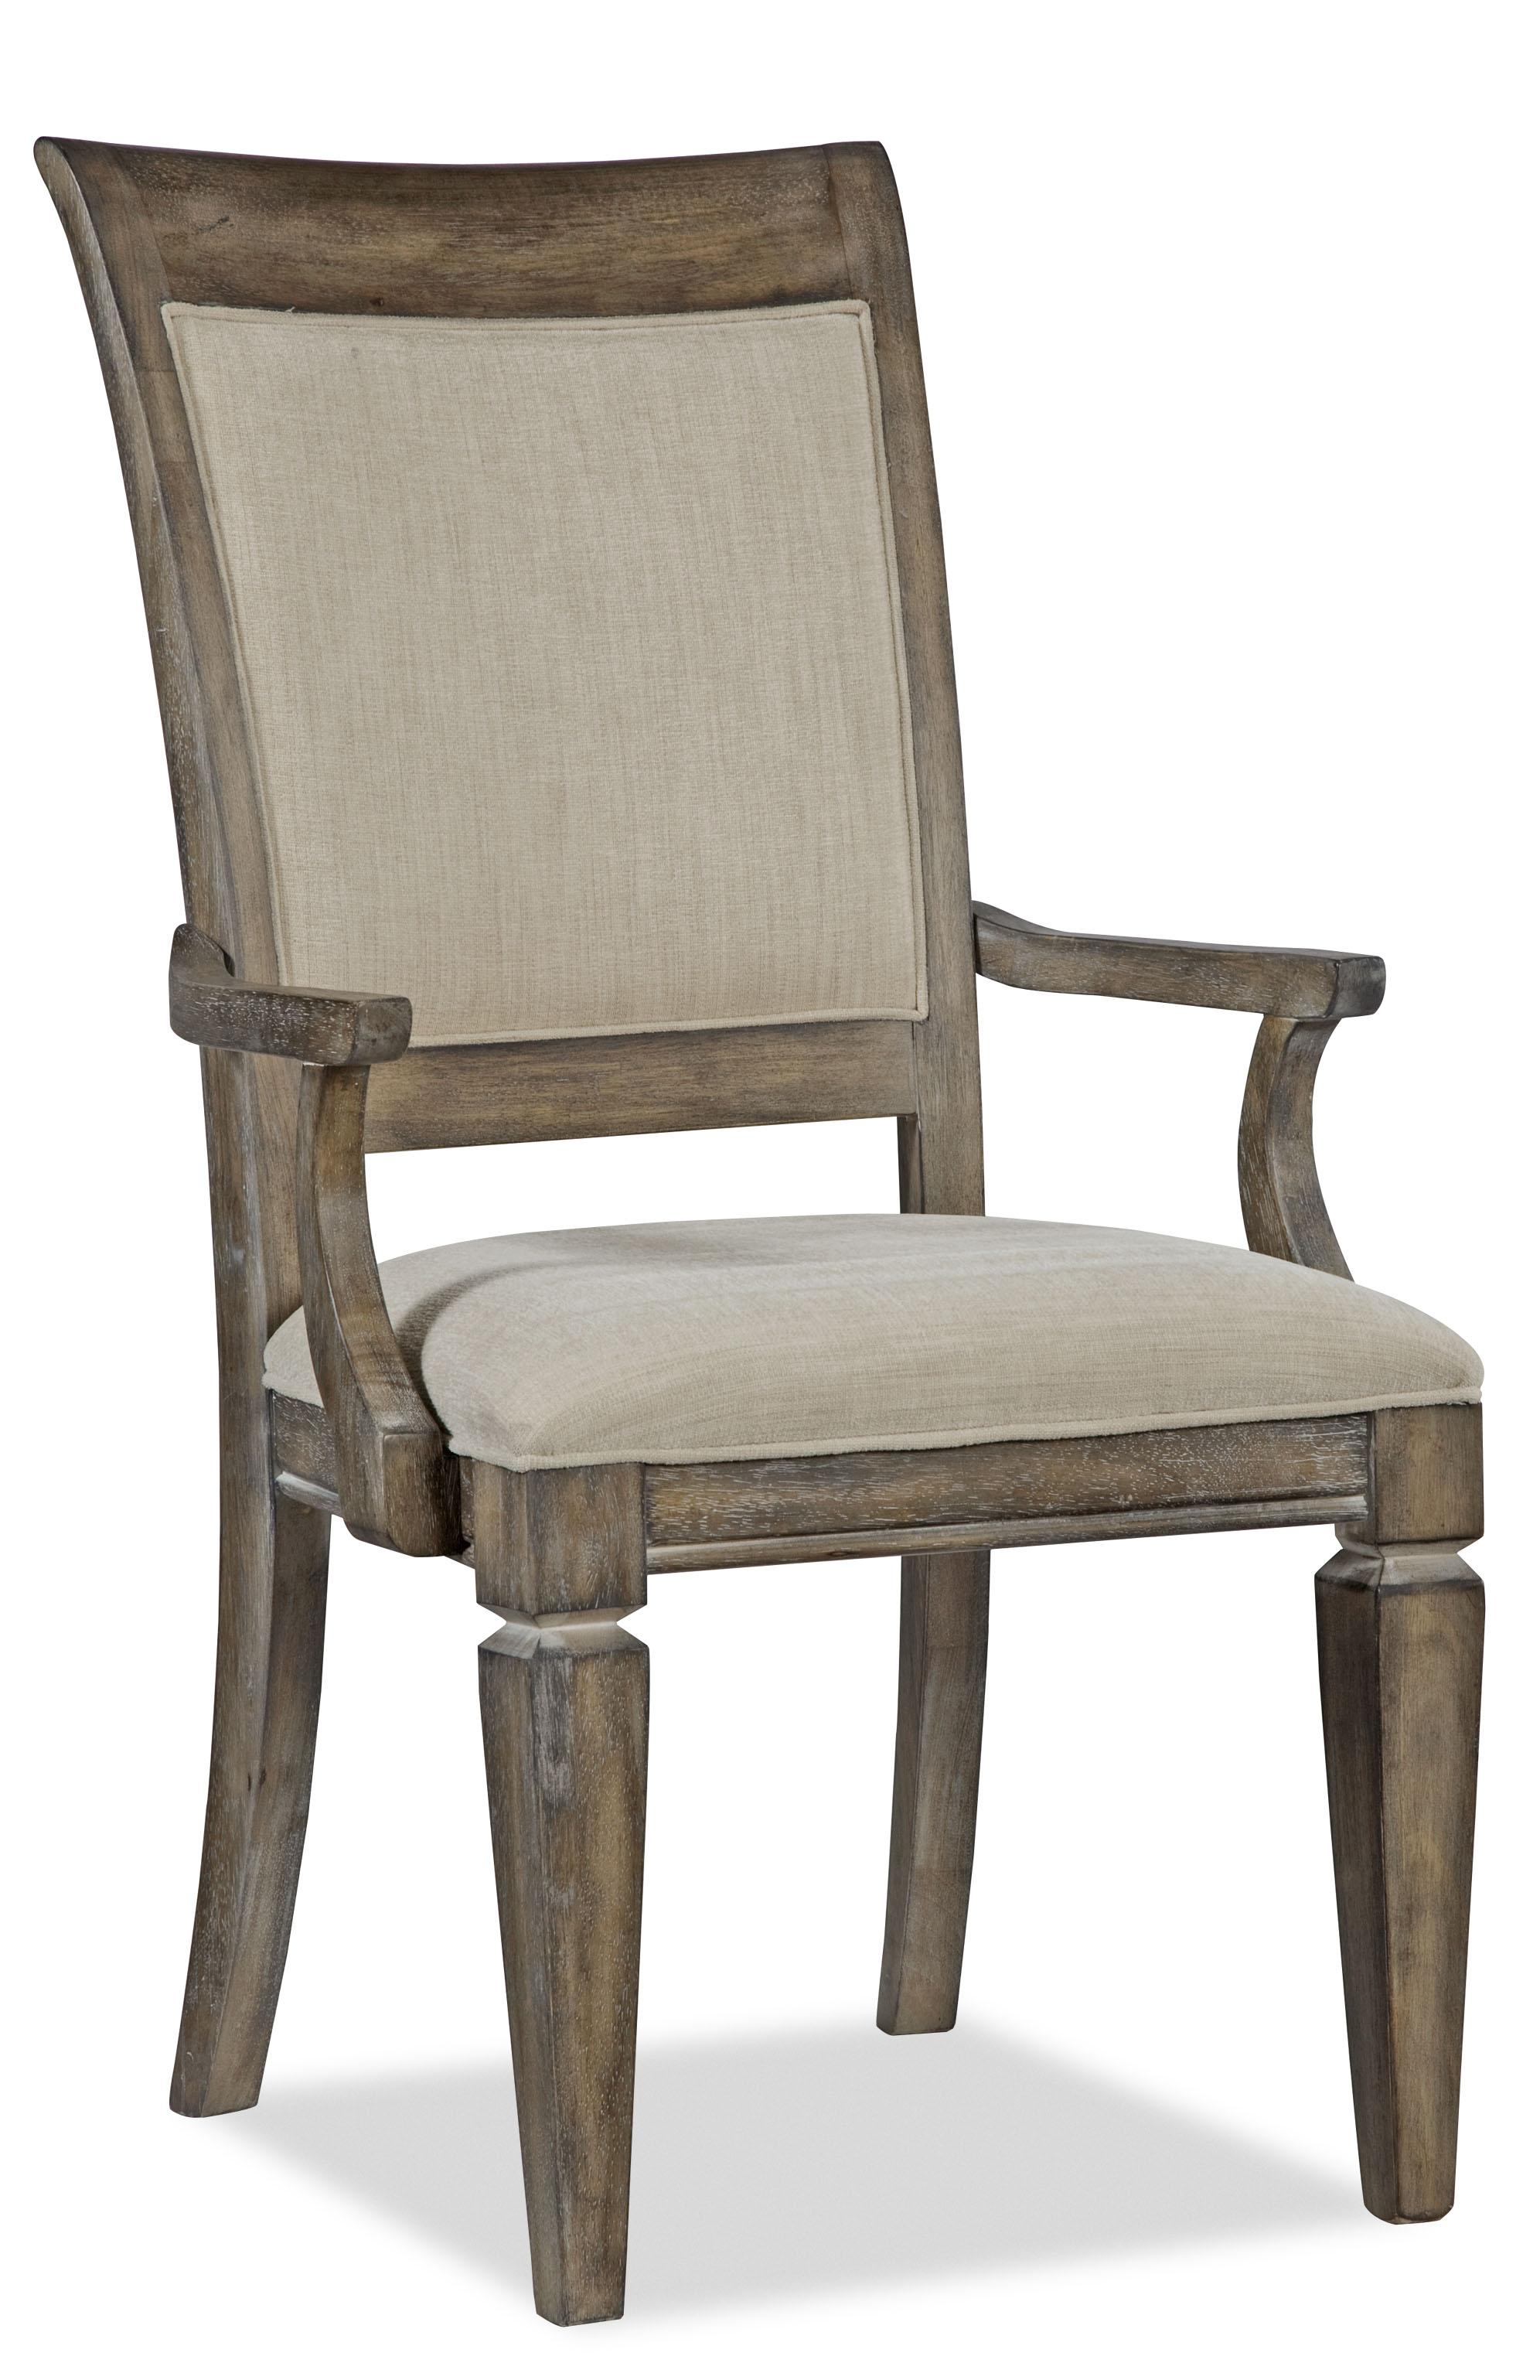 Legacy Classic Brownstone Village Upholstered Back Arm Chair - Item Number: 2760-141 KD